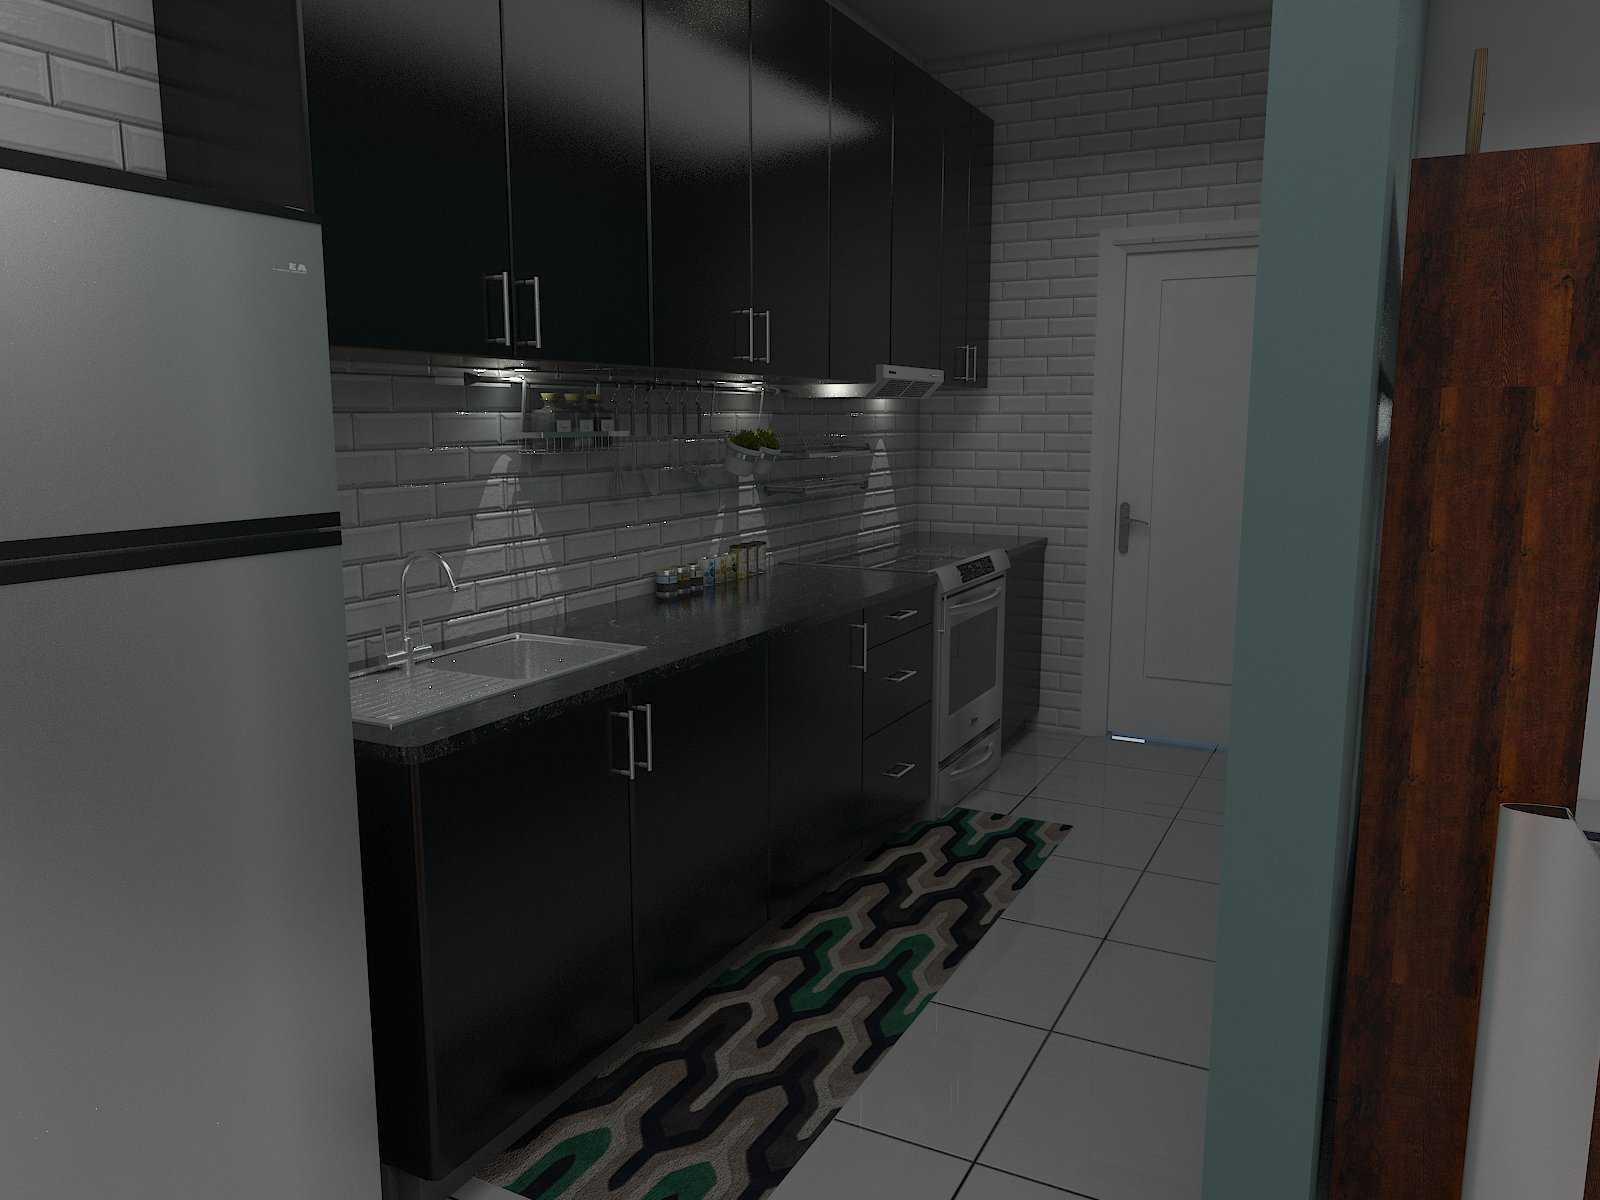 Donnie Marcellino Mr.f's House  Gg. Buntu 2, Jatimelati, Pondokmelati, Kota Bks, Jawa Barat 17415, Indonesia Custom Kitchen Set Design Kontemporer  30168